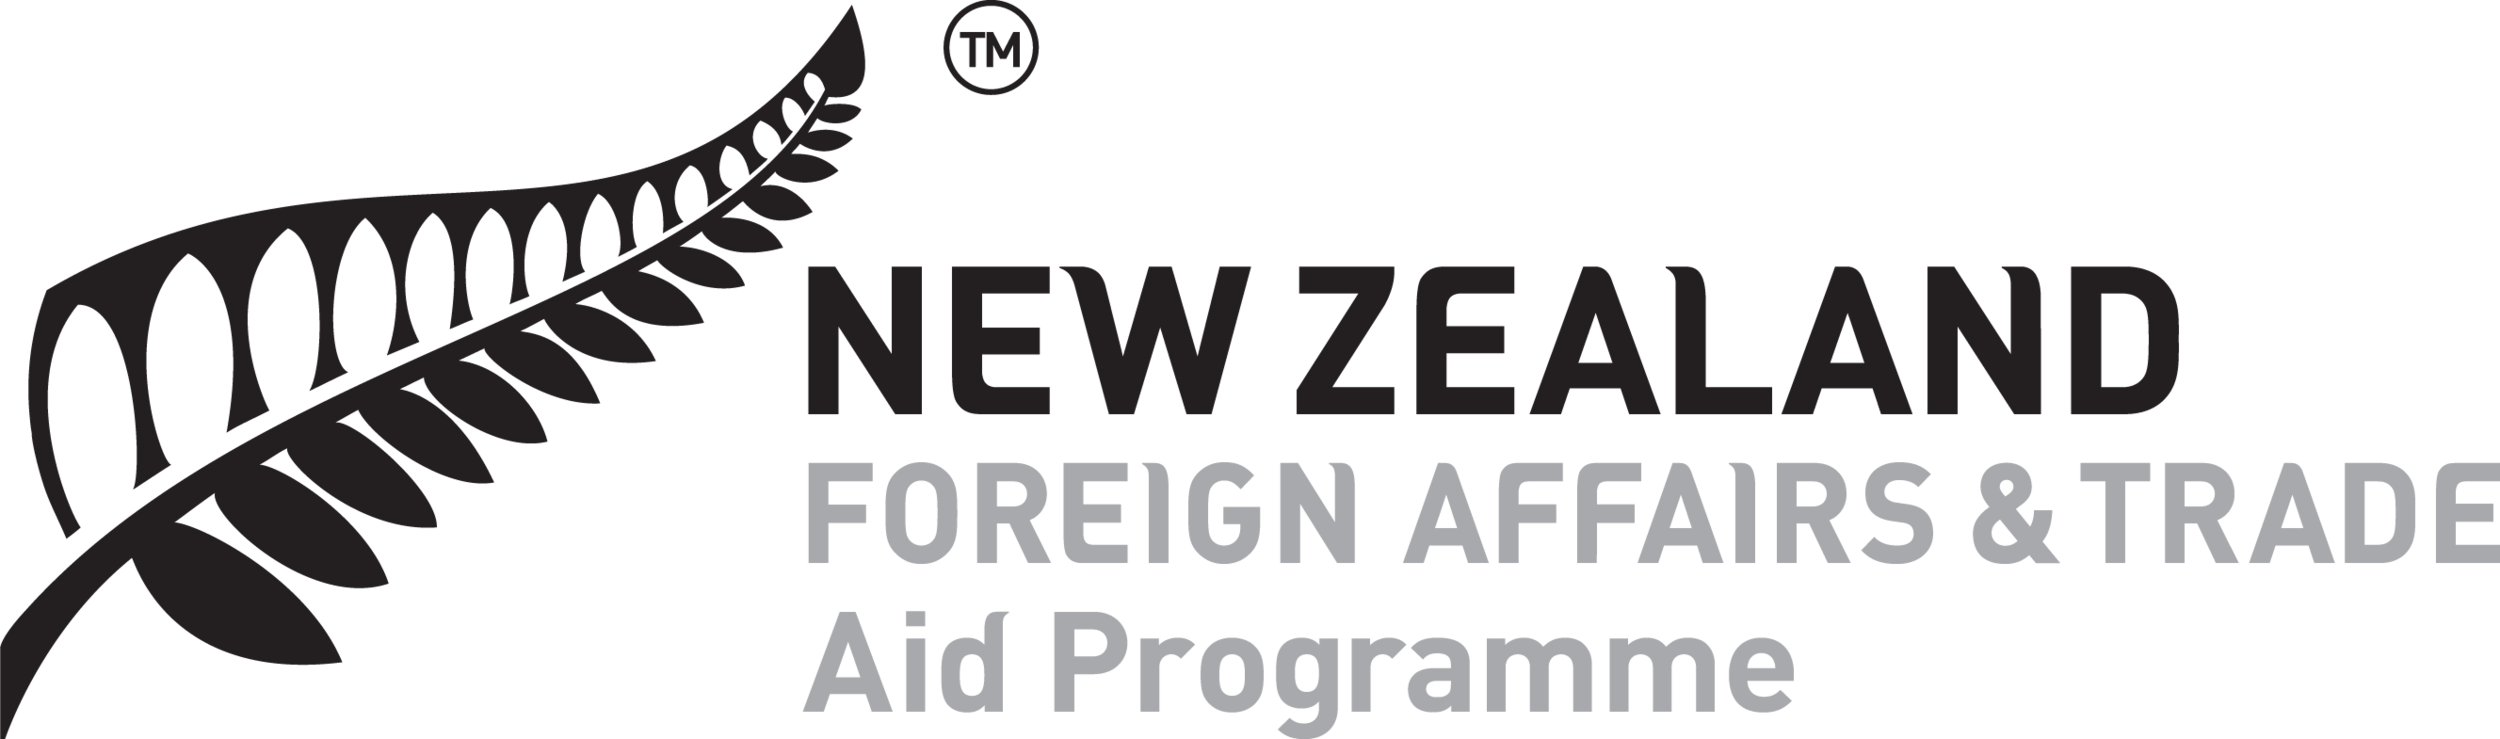 NZ Aid Programme.png